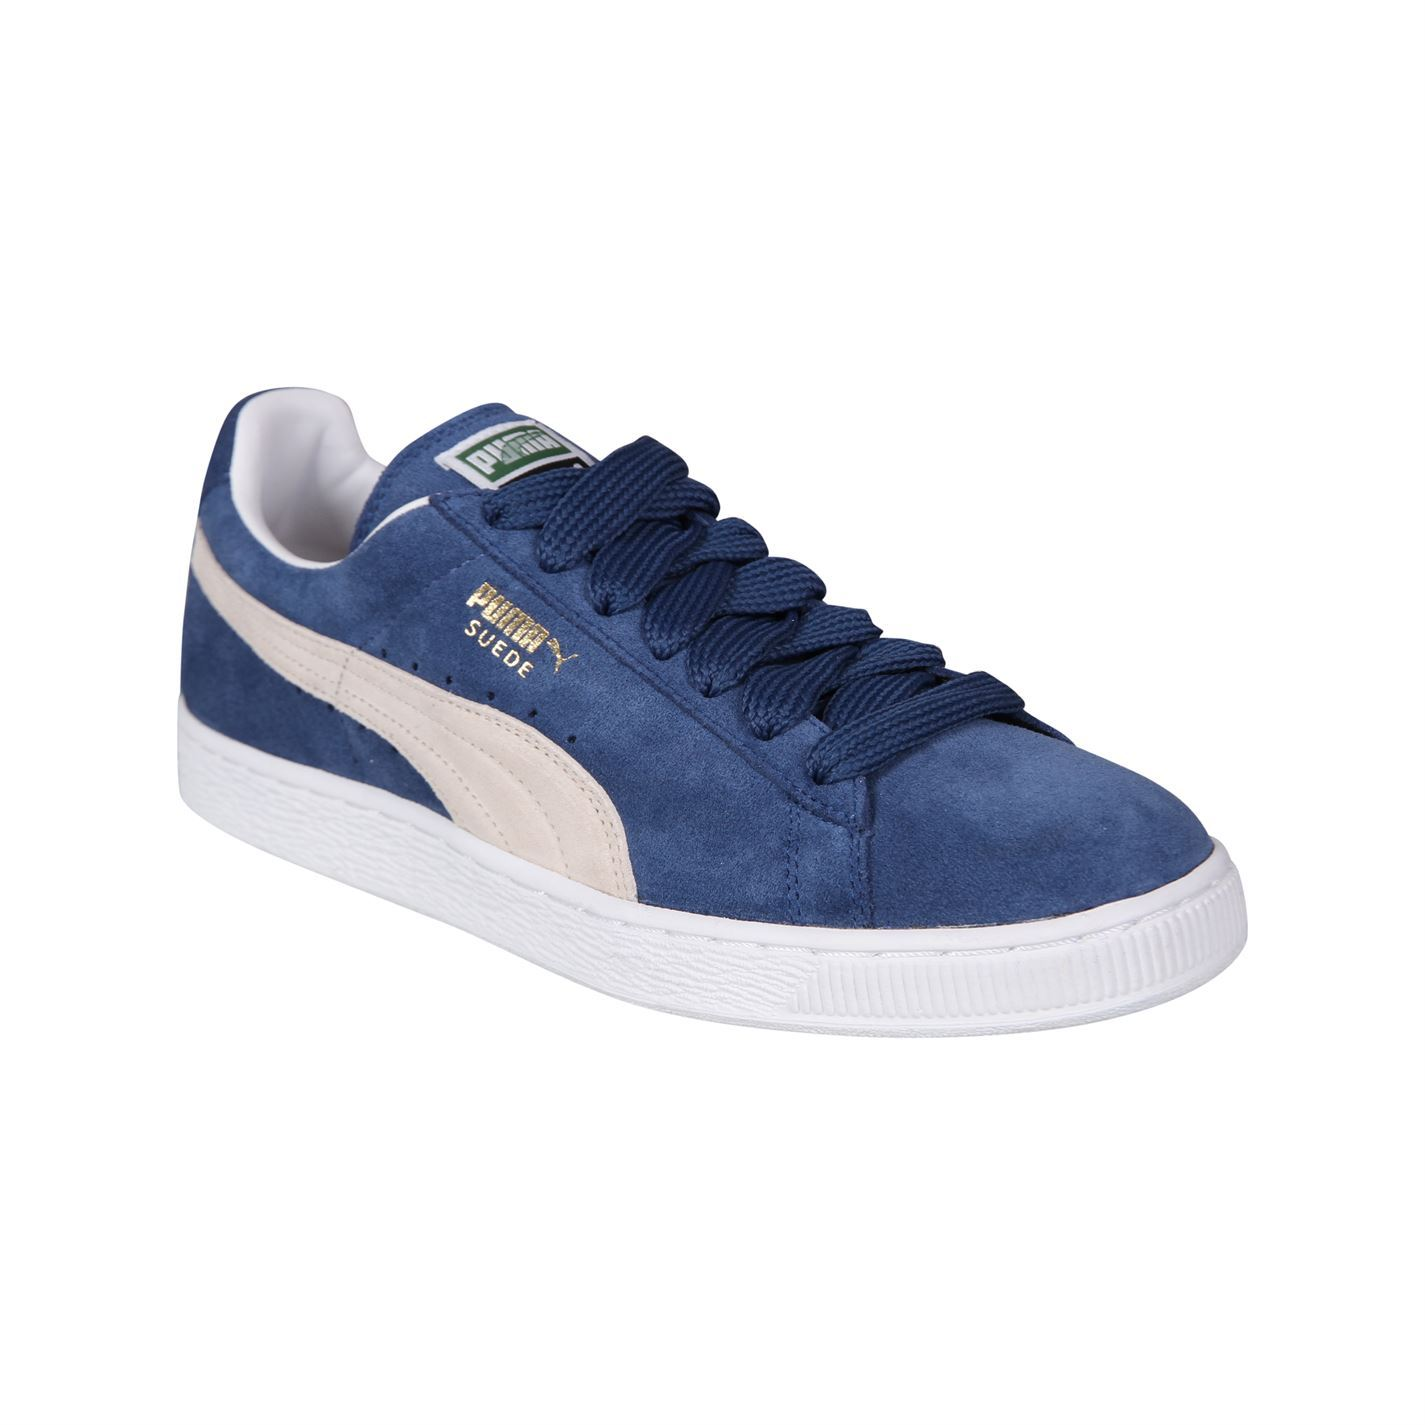 Uomo Puma Suede Classic Plus Trainers New Padded Ankle Collar Retro New Trainers 13737e